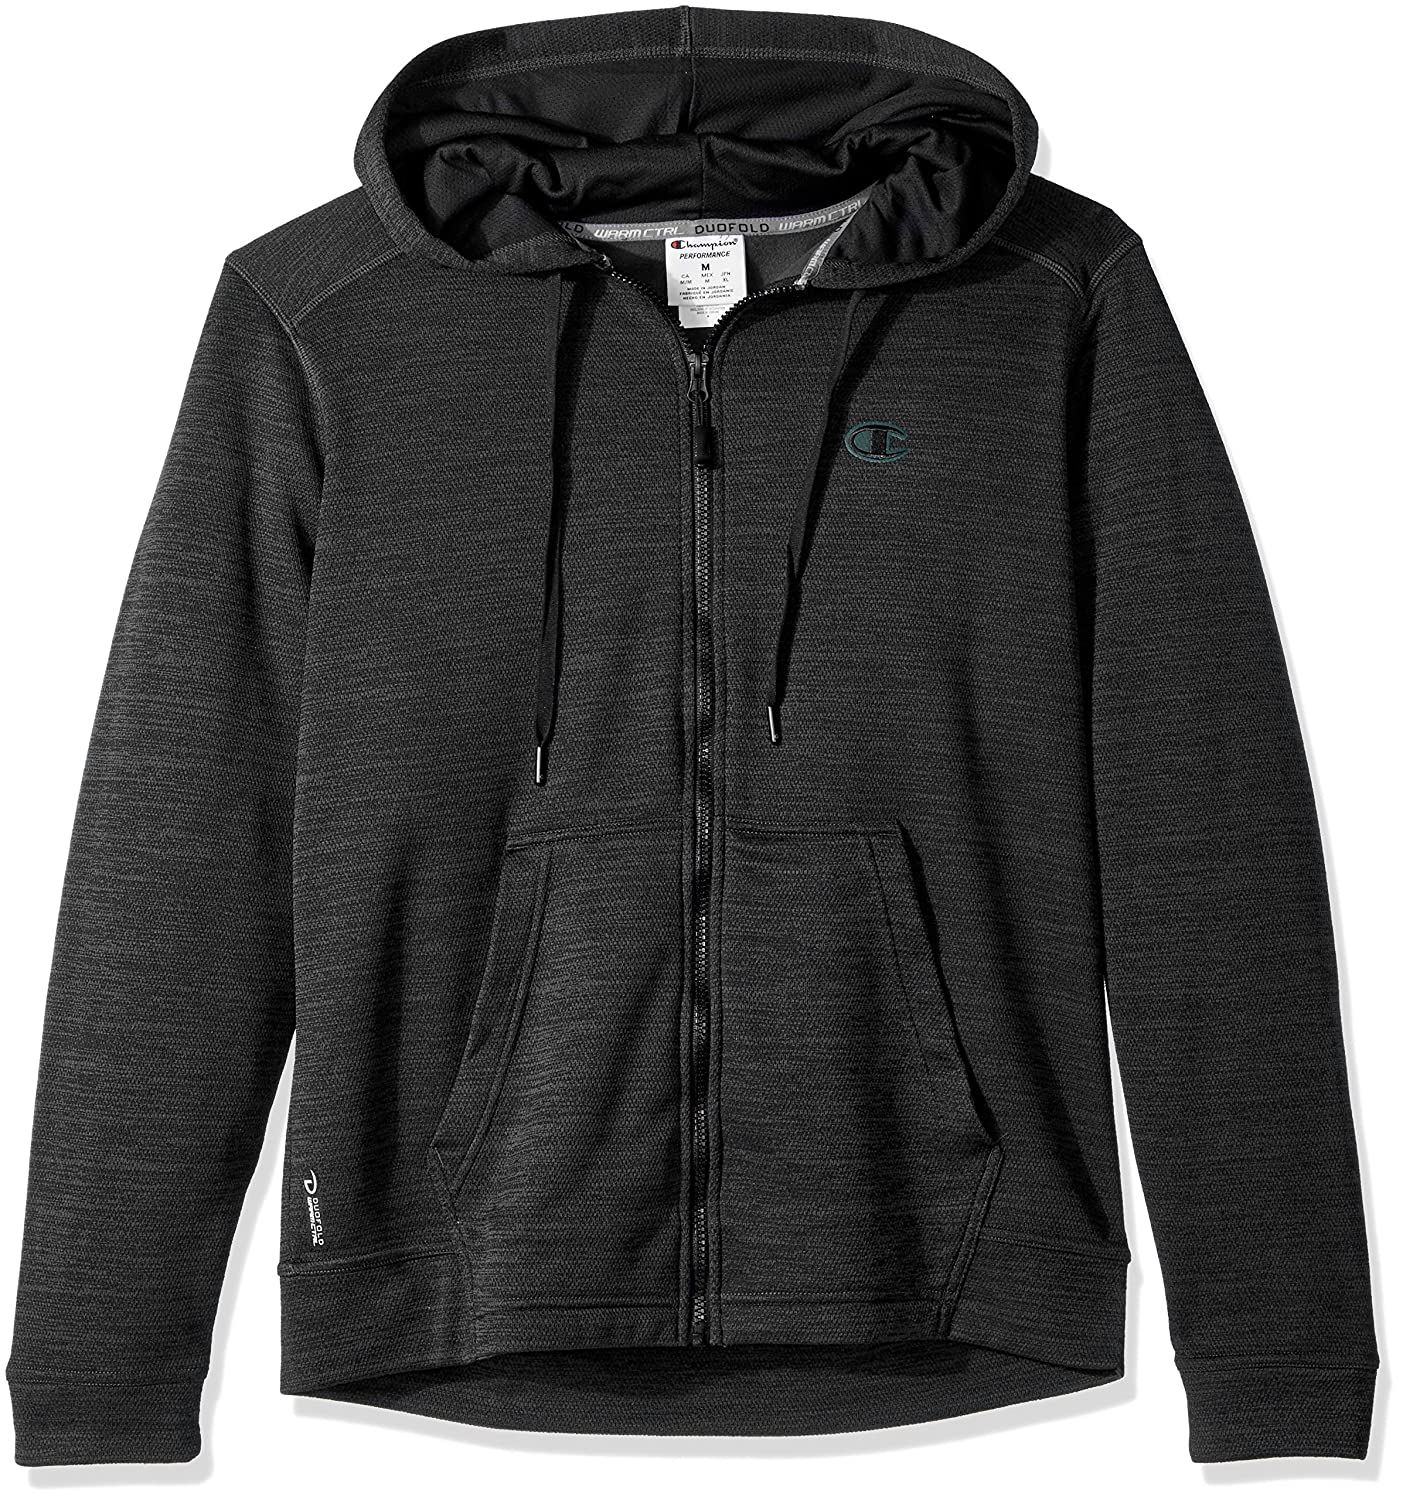 3cedc3fe Amazon.com: Champion Men's Premium Performance Fleece Full Zip Hoodie,  Forest Grove Heather/Black, Small: Clothing